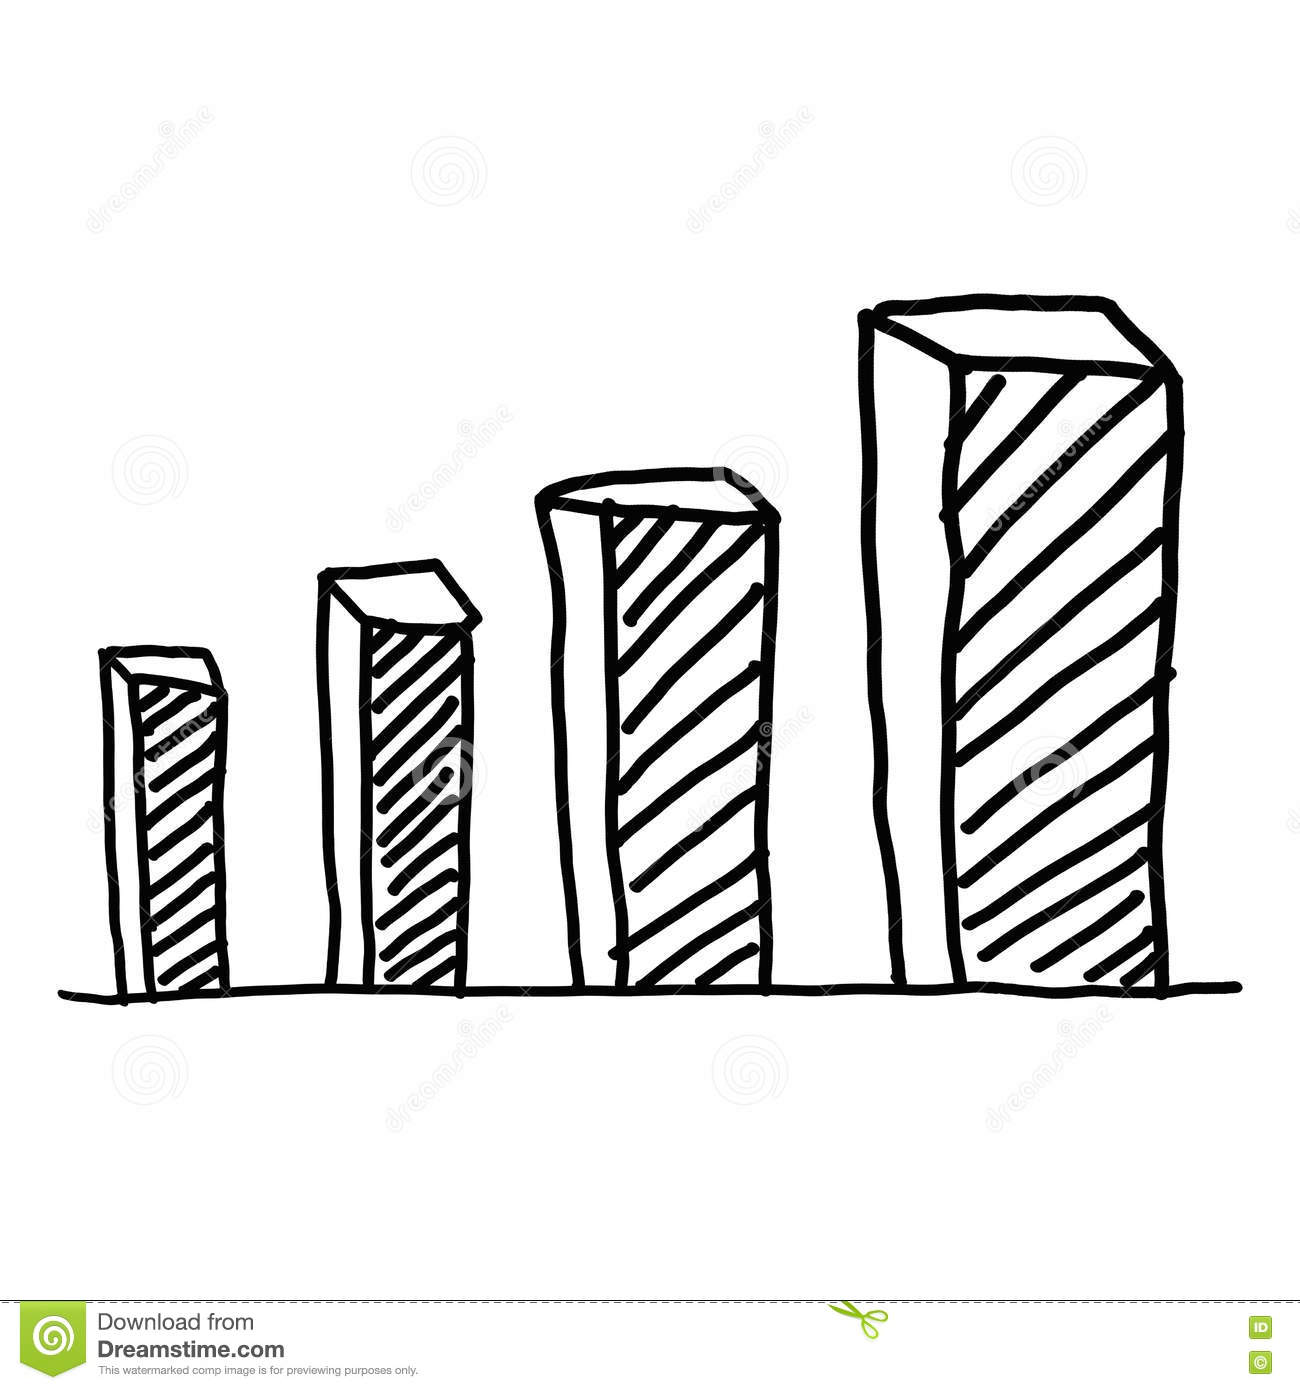 Drawing Line Graphs By Hand : Hand drawn a business bar graph show to concept of data